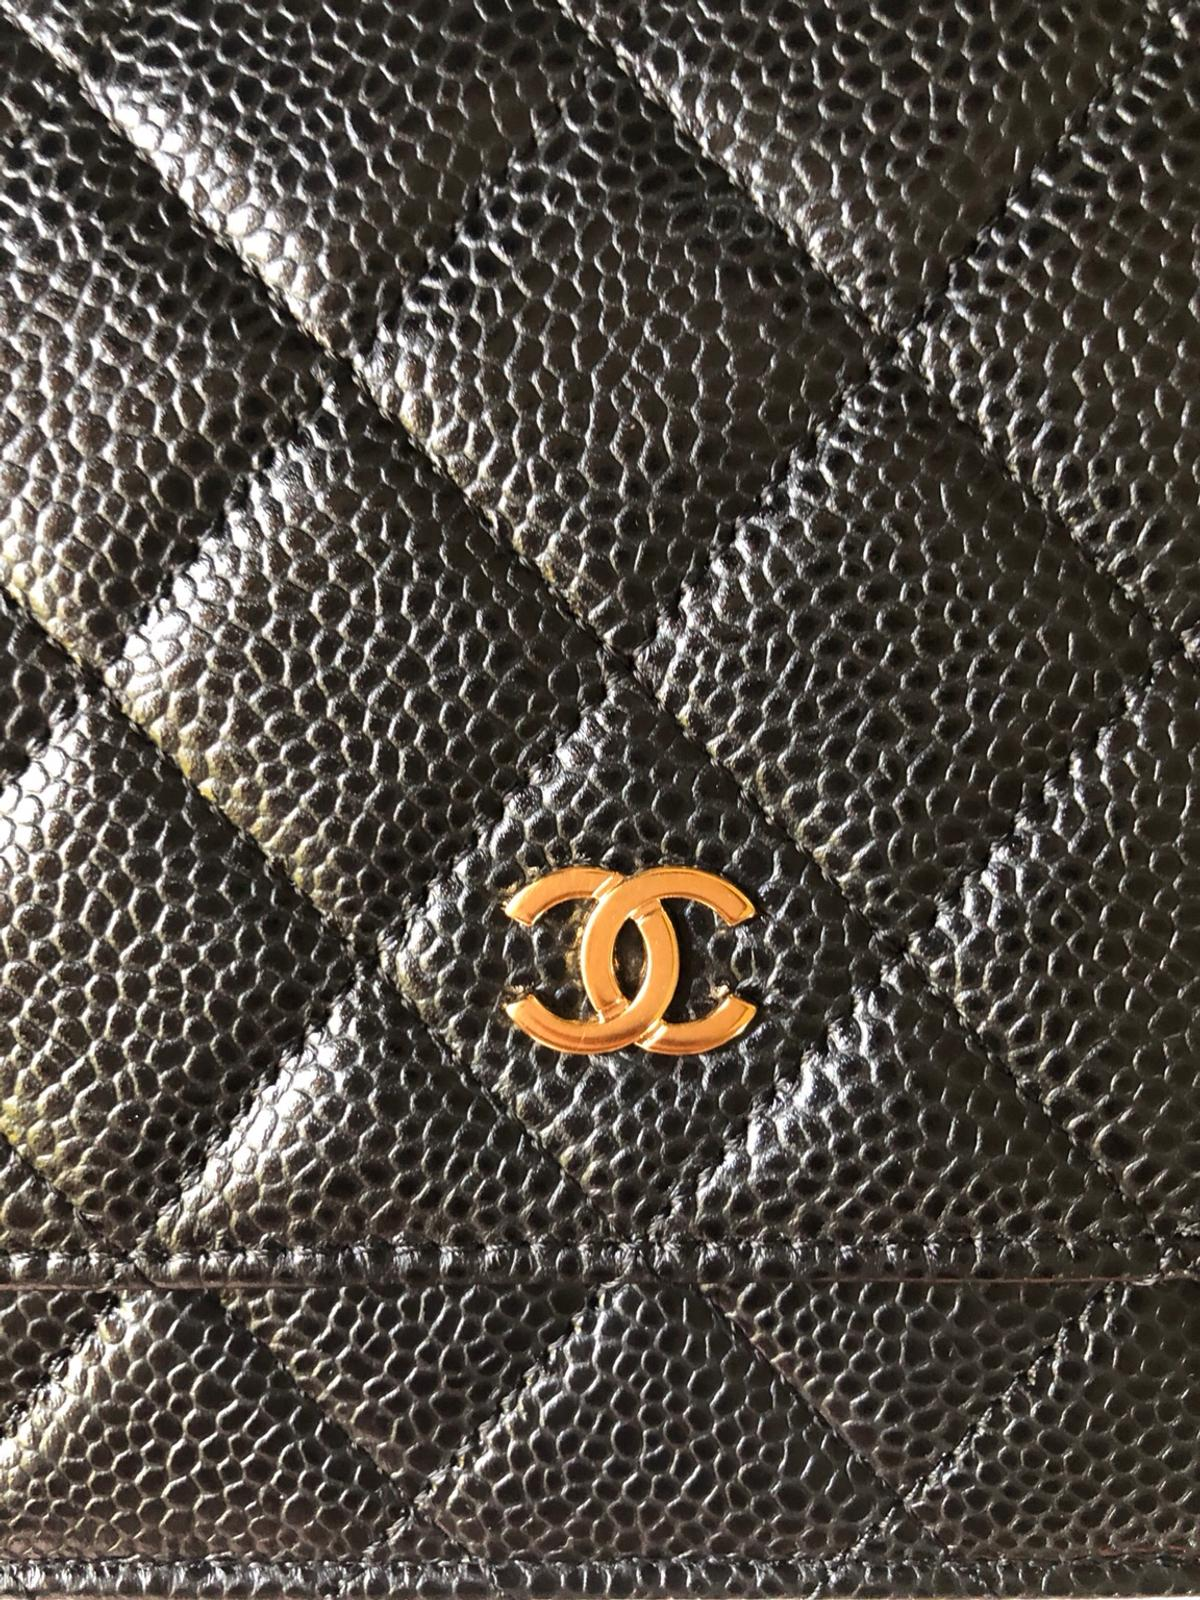 Chanel WOC Black Caviar in Gold Hardware in IG1 London for